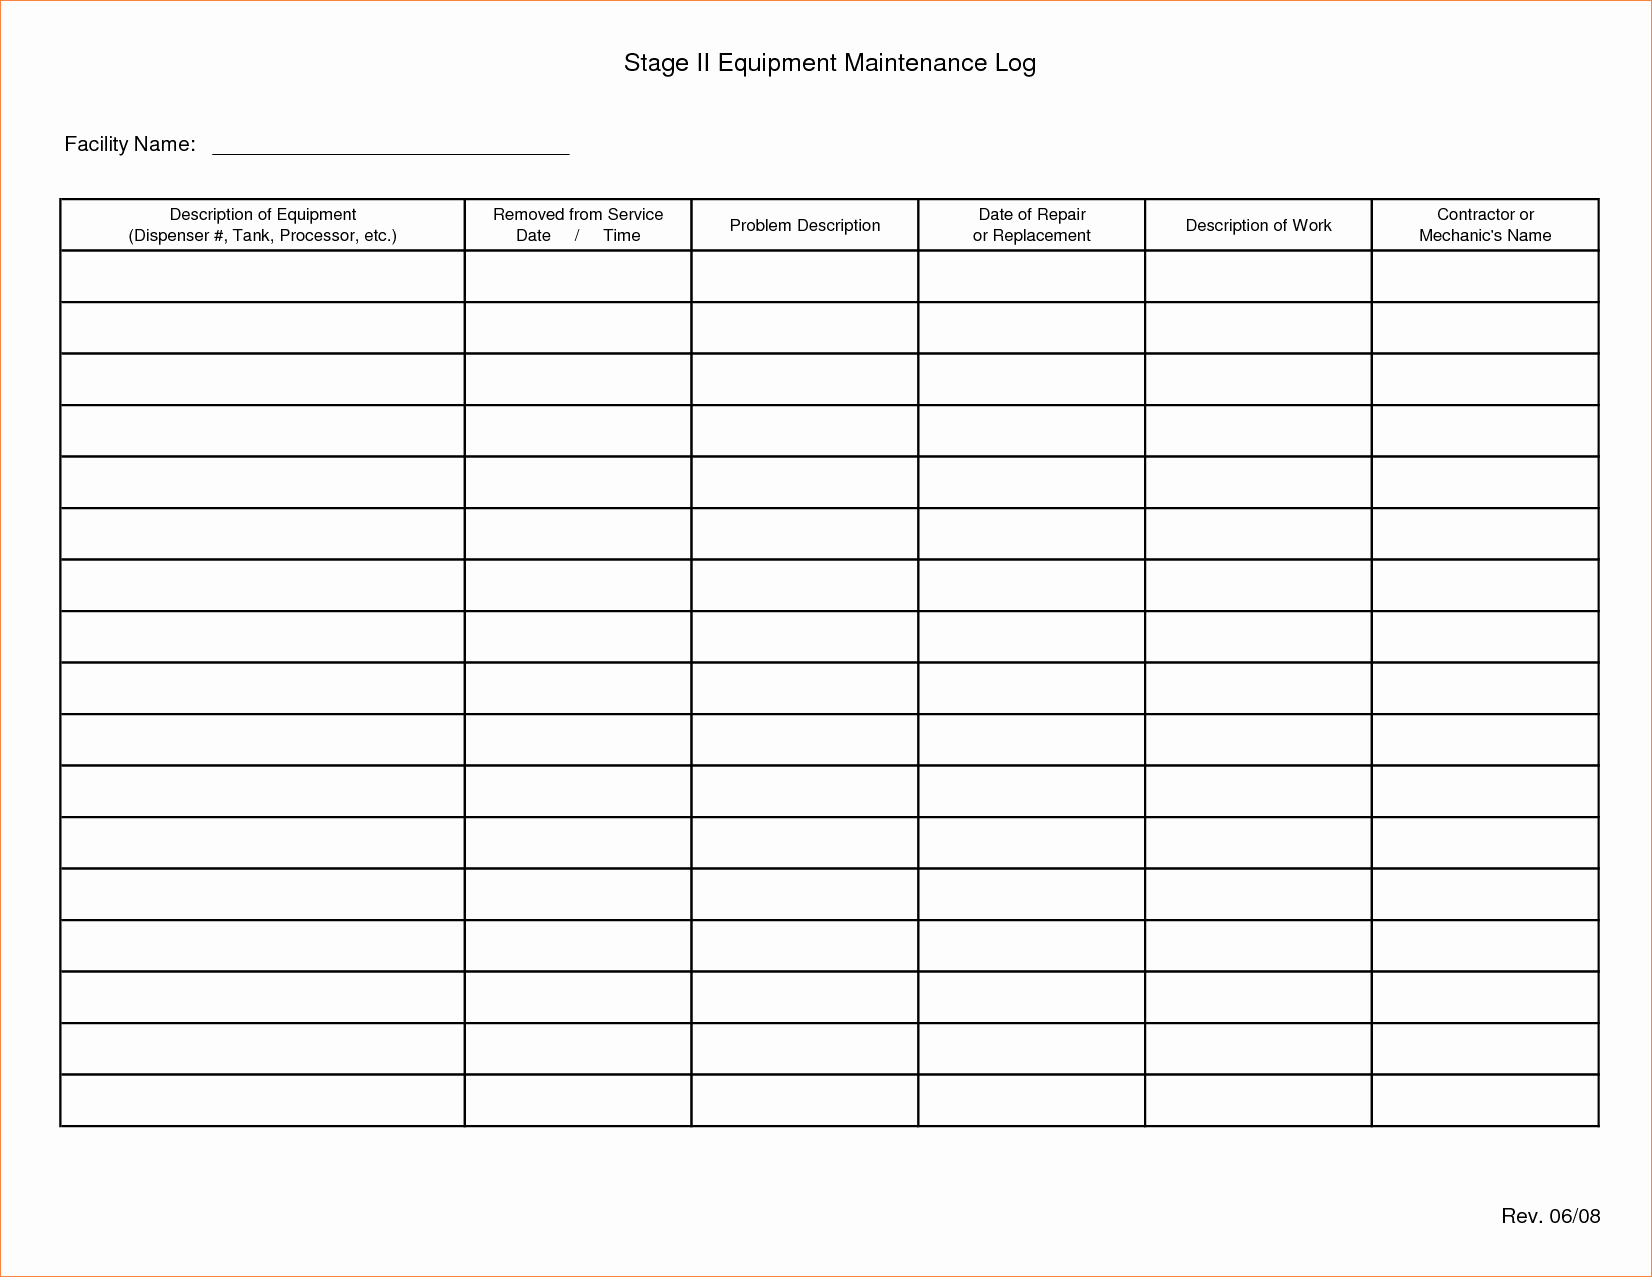 Equipment Maintenance Log Template Excel Luxury 5 Equipment Maintenance Log